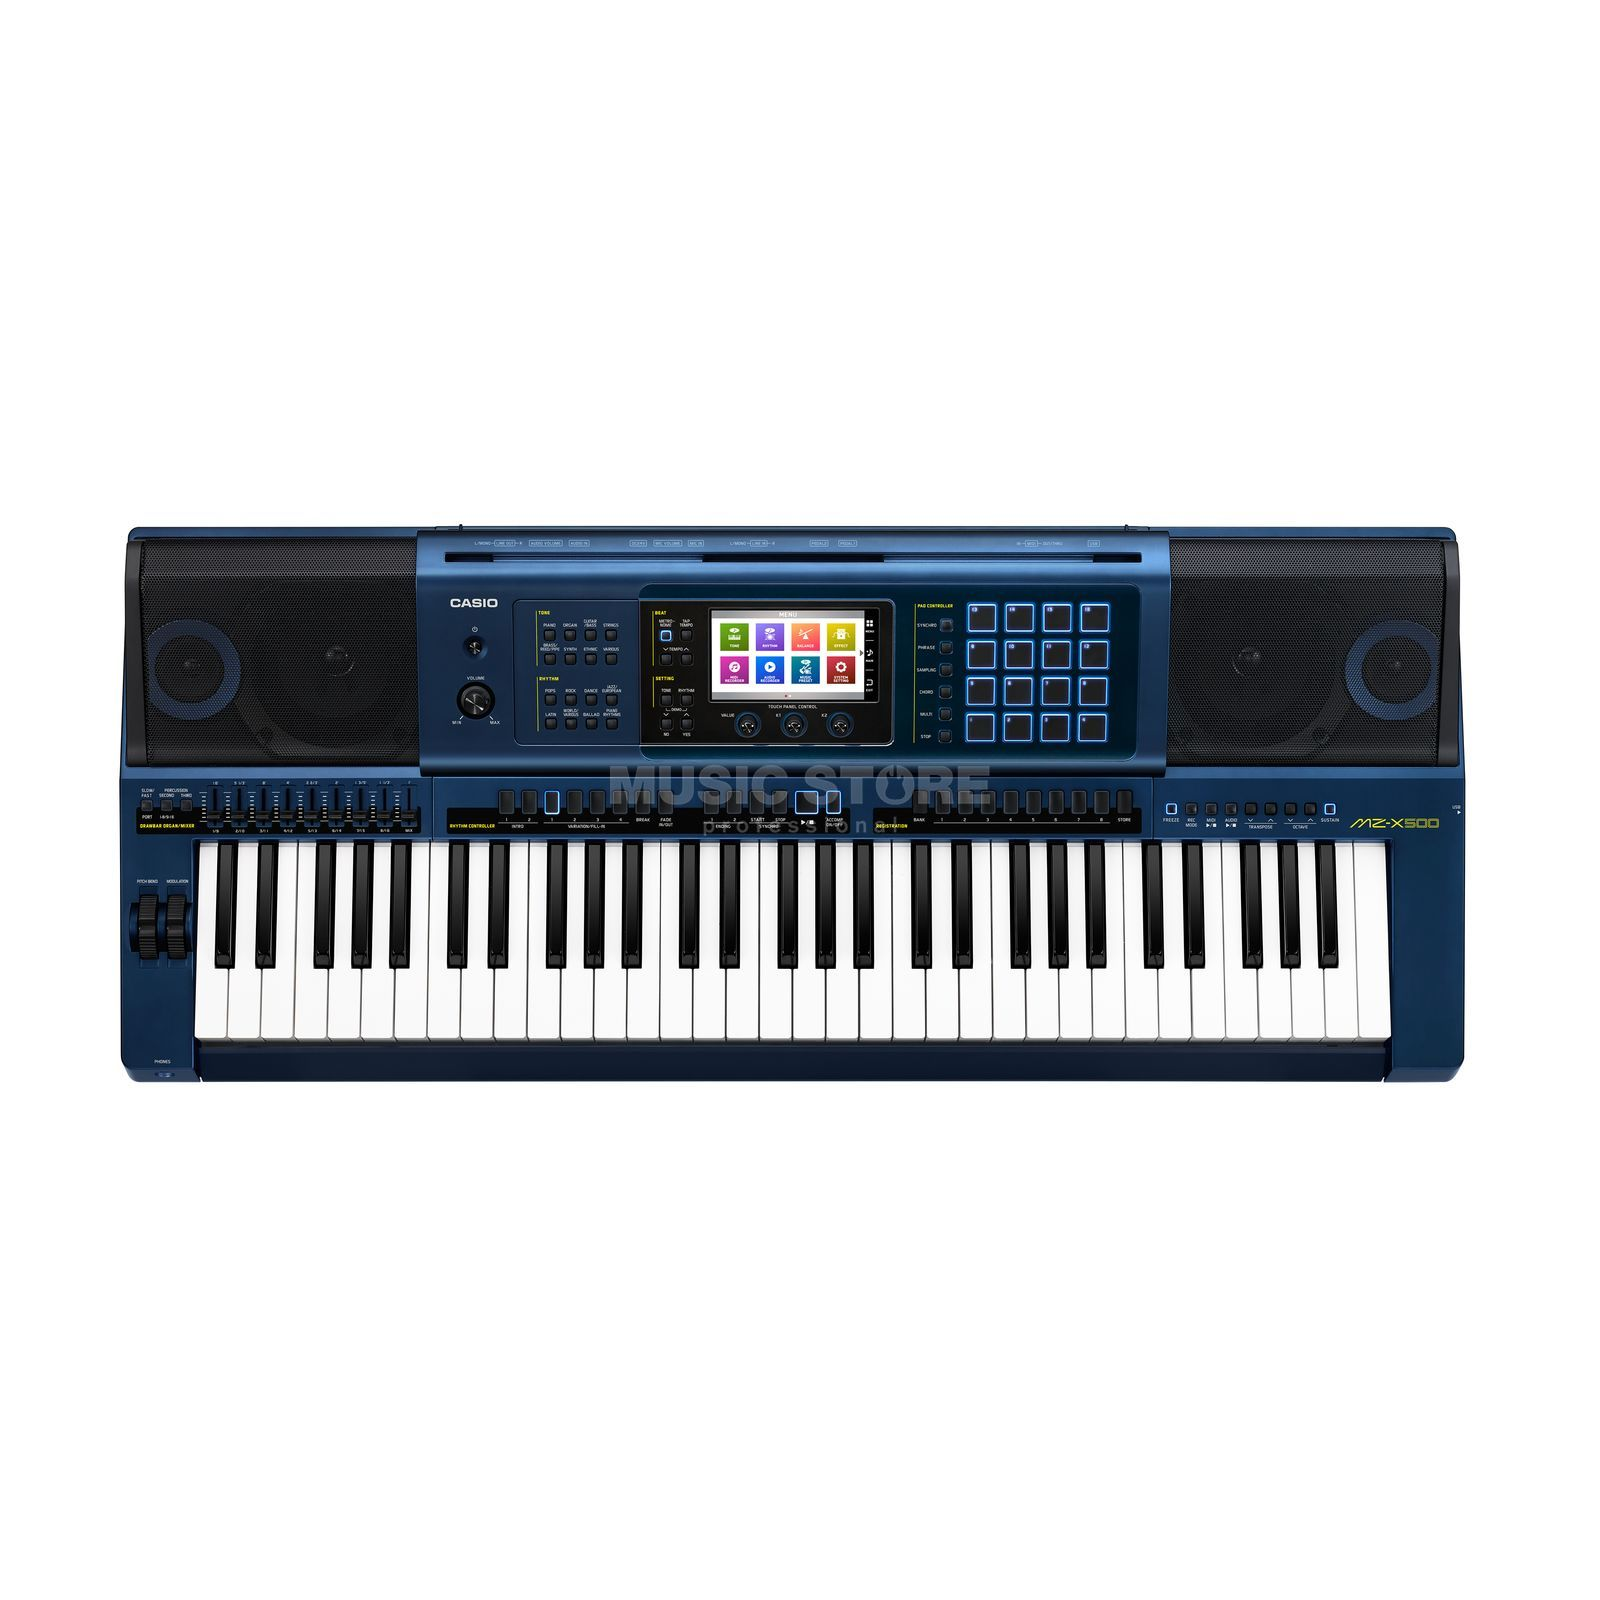 Casio MZ-X500 Premium Entertainer Keyboard Produktbild